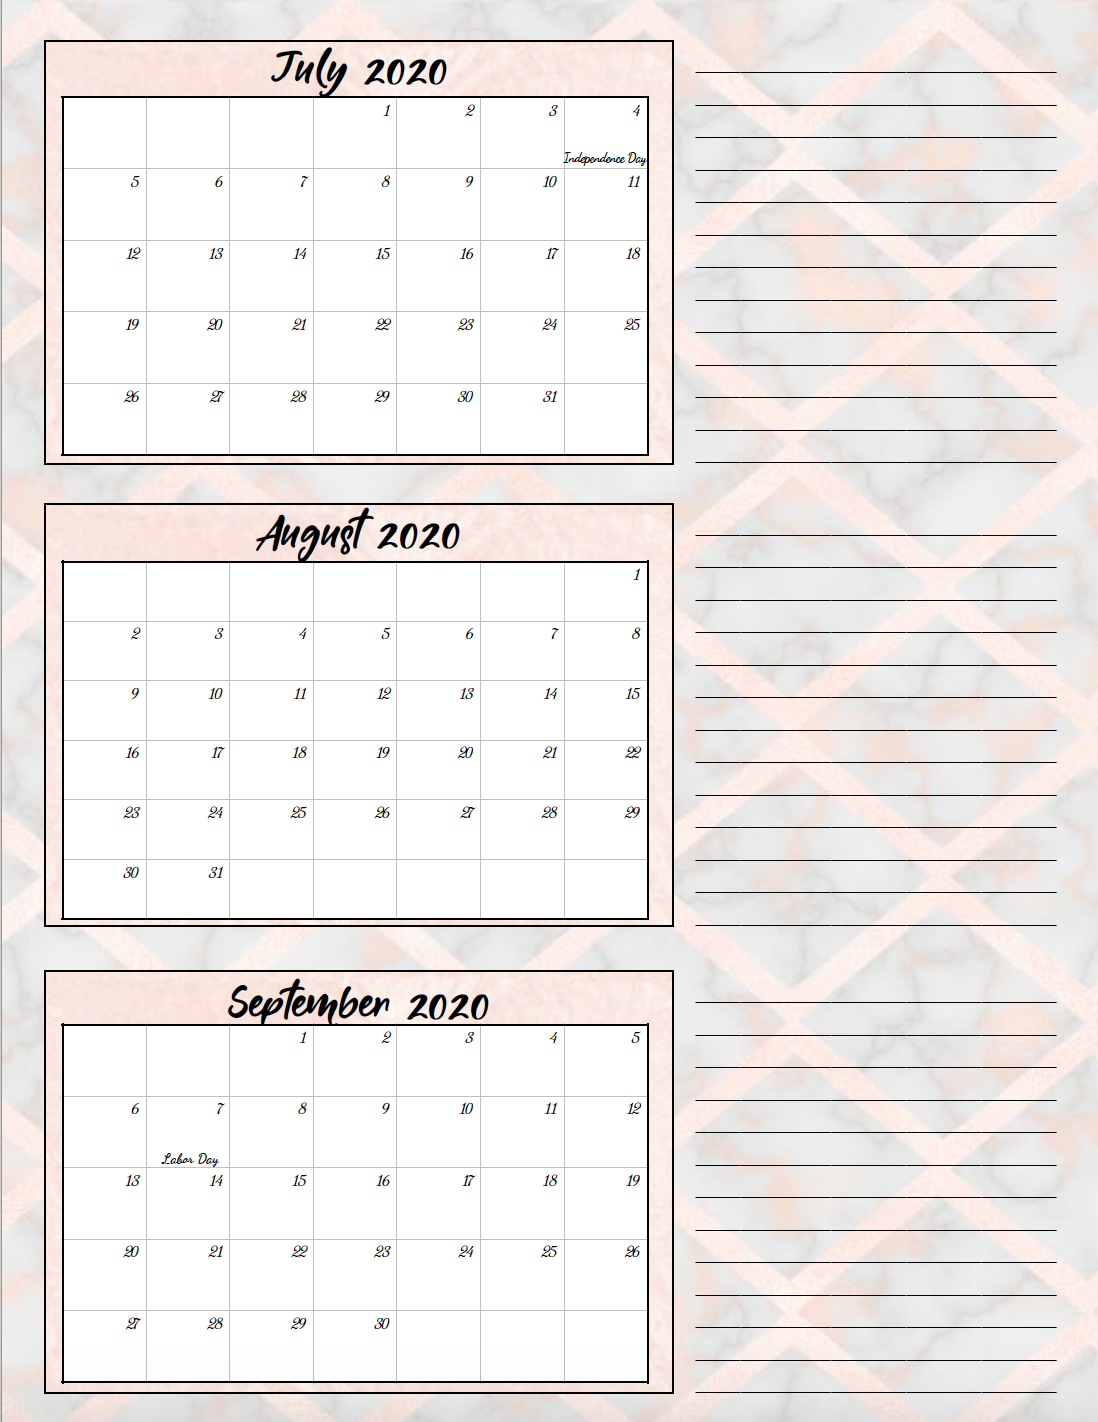 Free Printable 2020 Quarterly Calendars With Holidays 3 Designs Quarterly Calendar Calendar Printables Free Printable Calendar